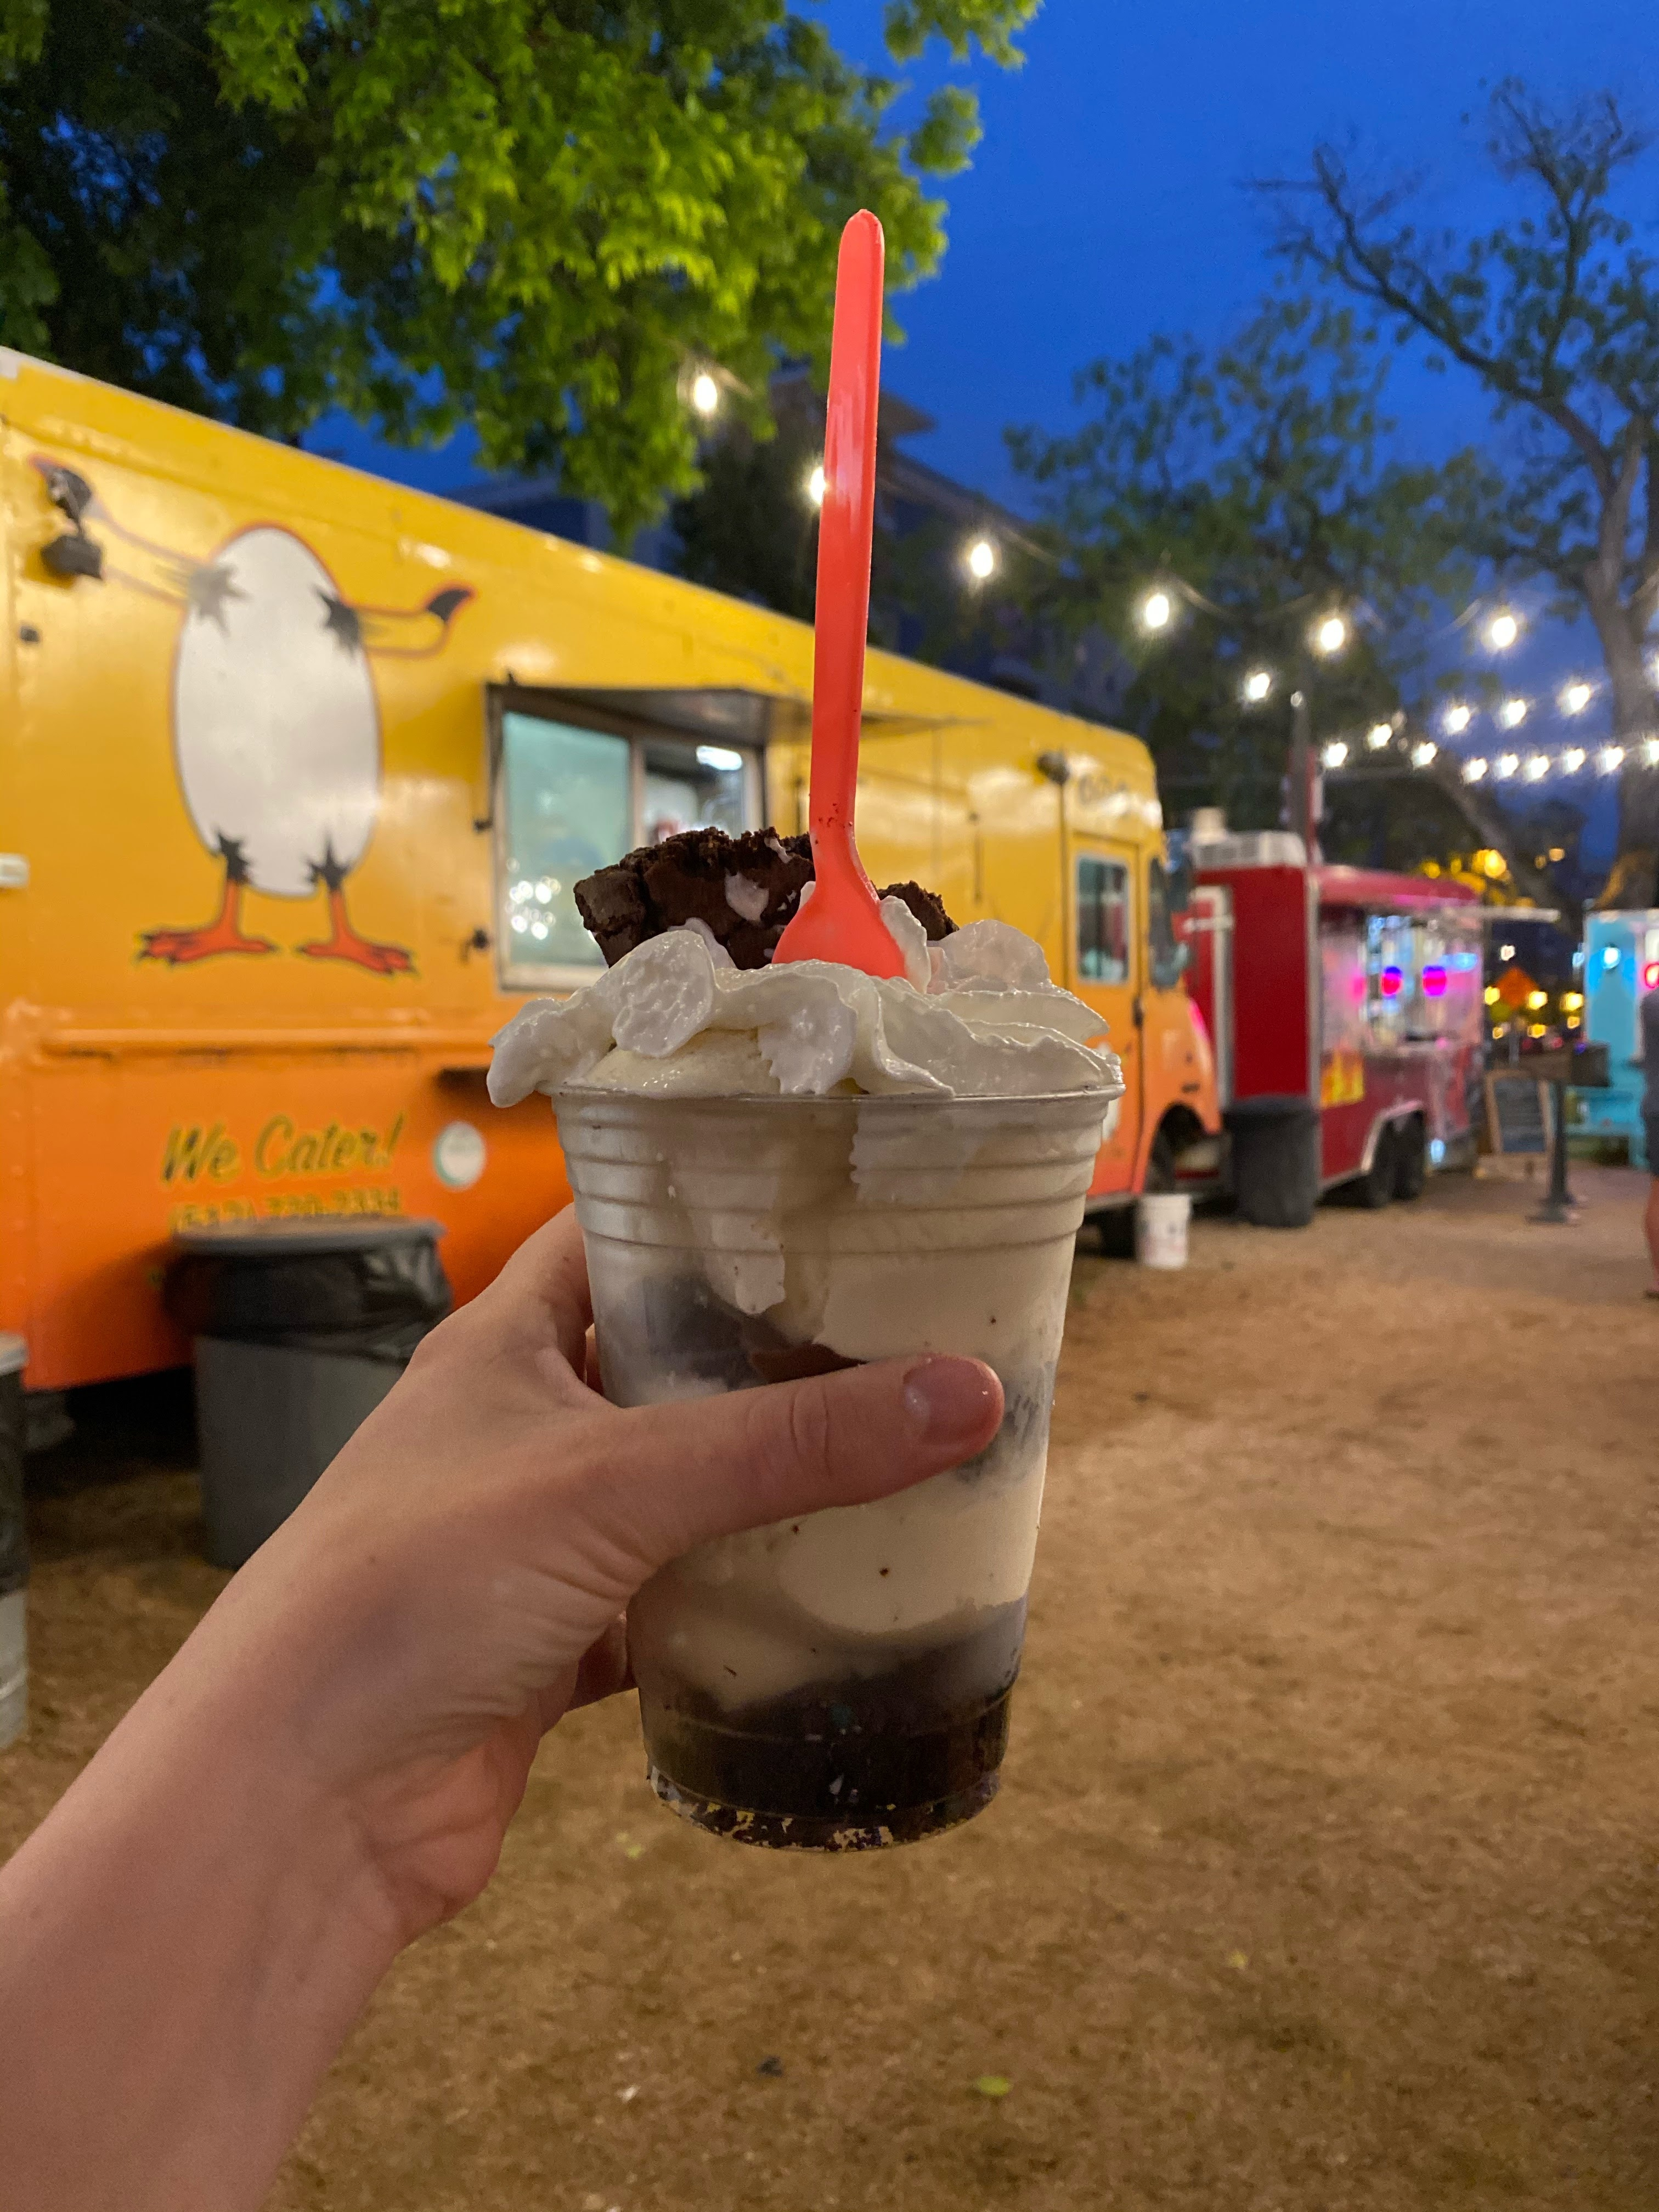 Cold Cookie Company Food Truck in Austin, Texas | www.biblio-style.com